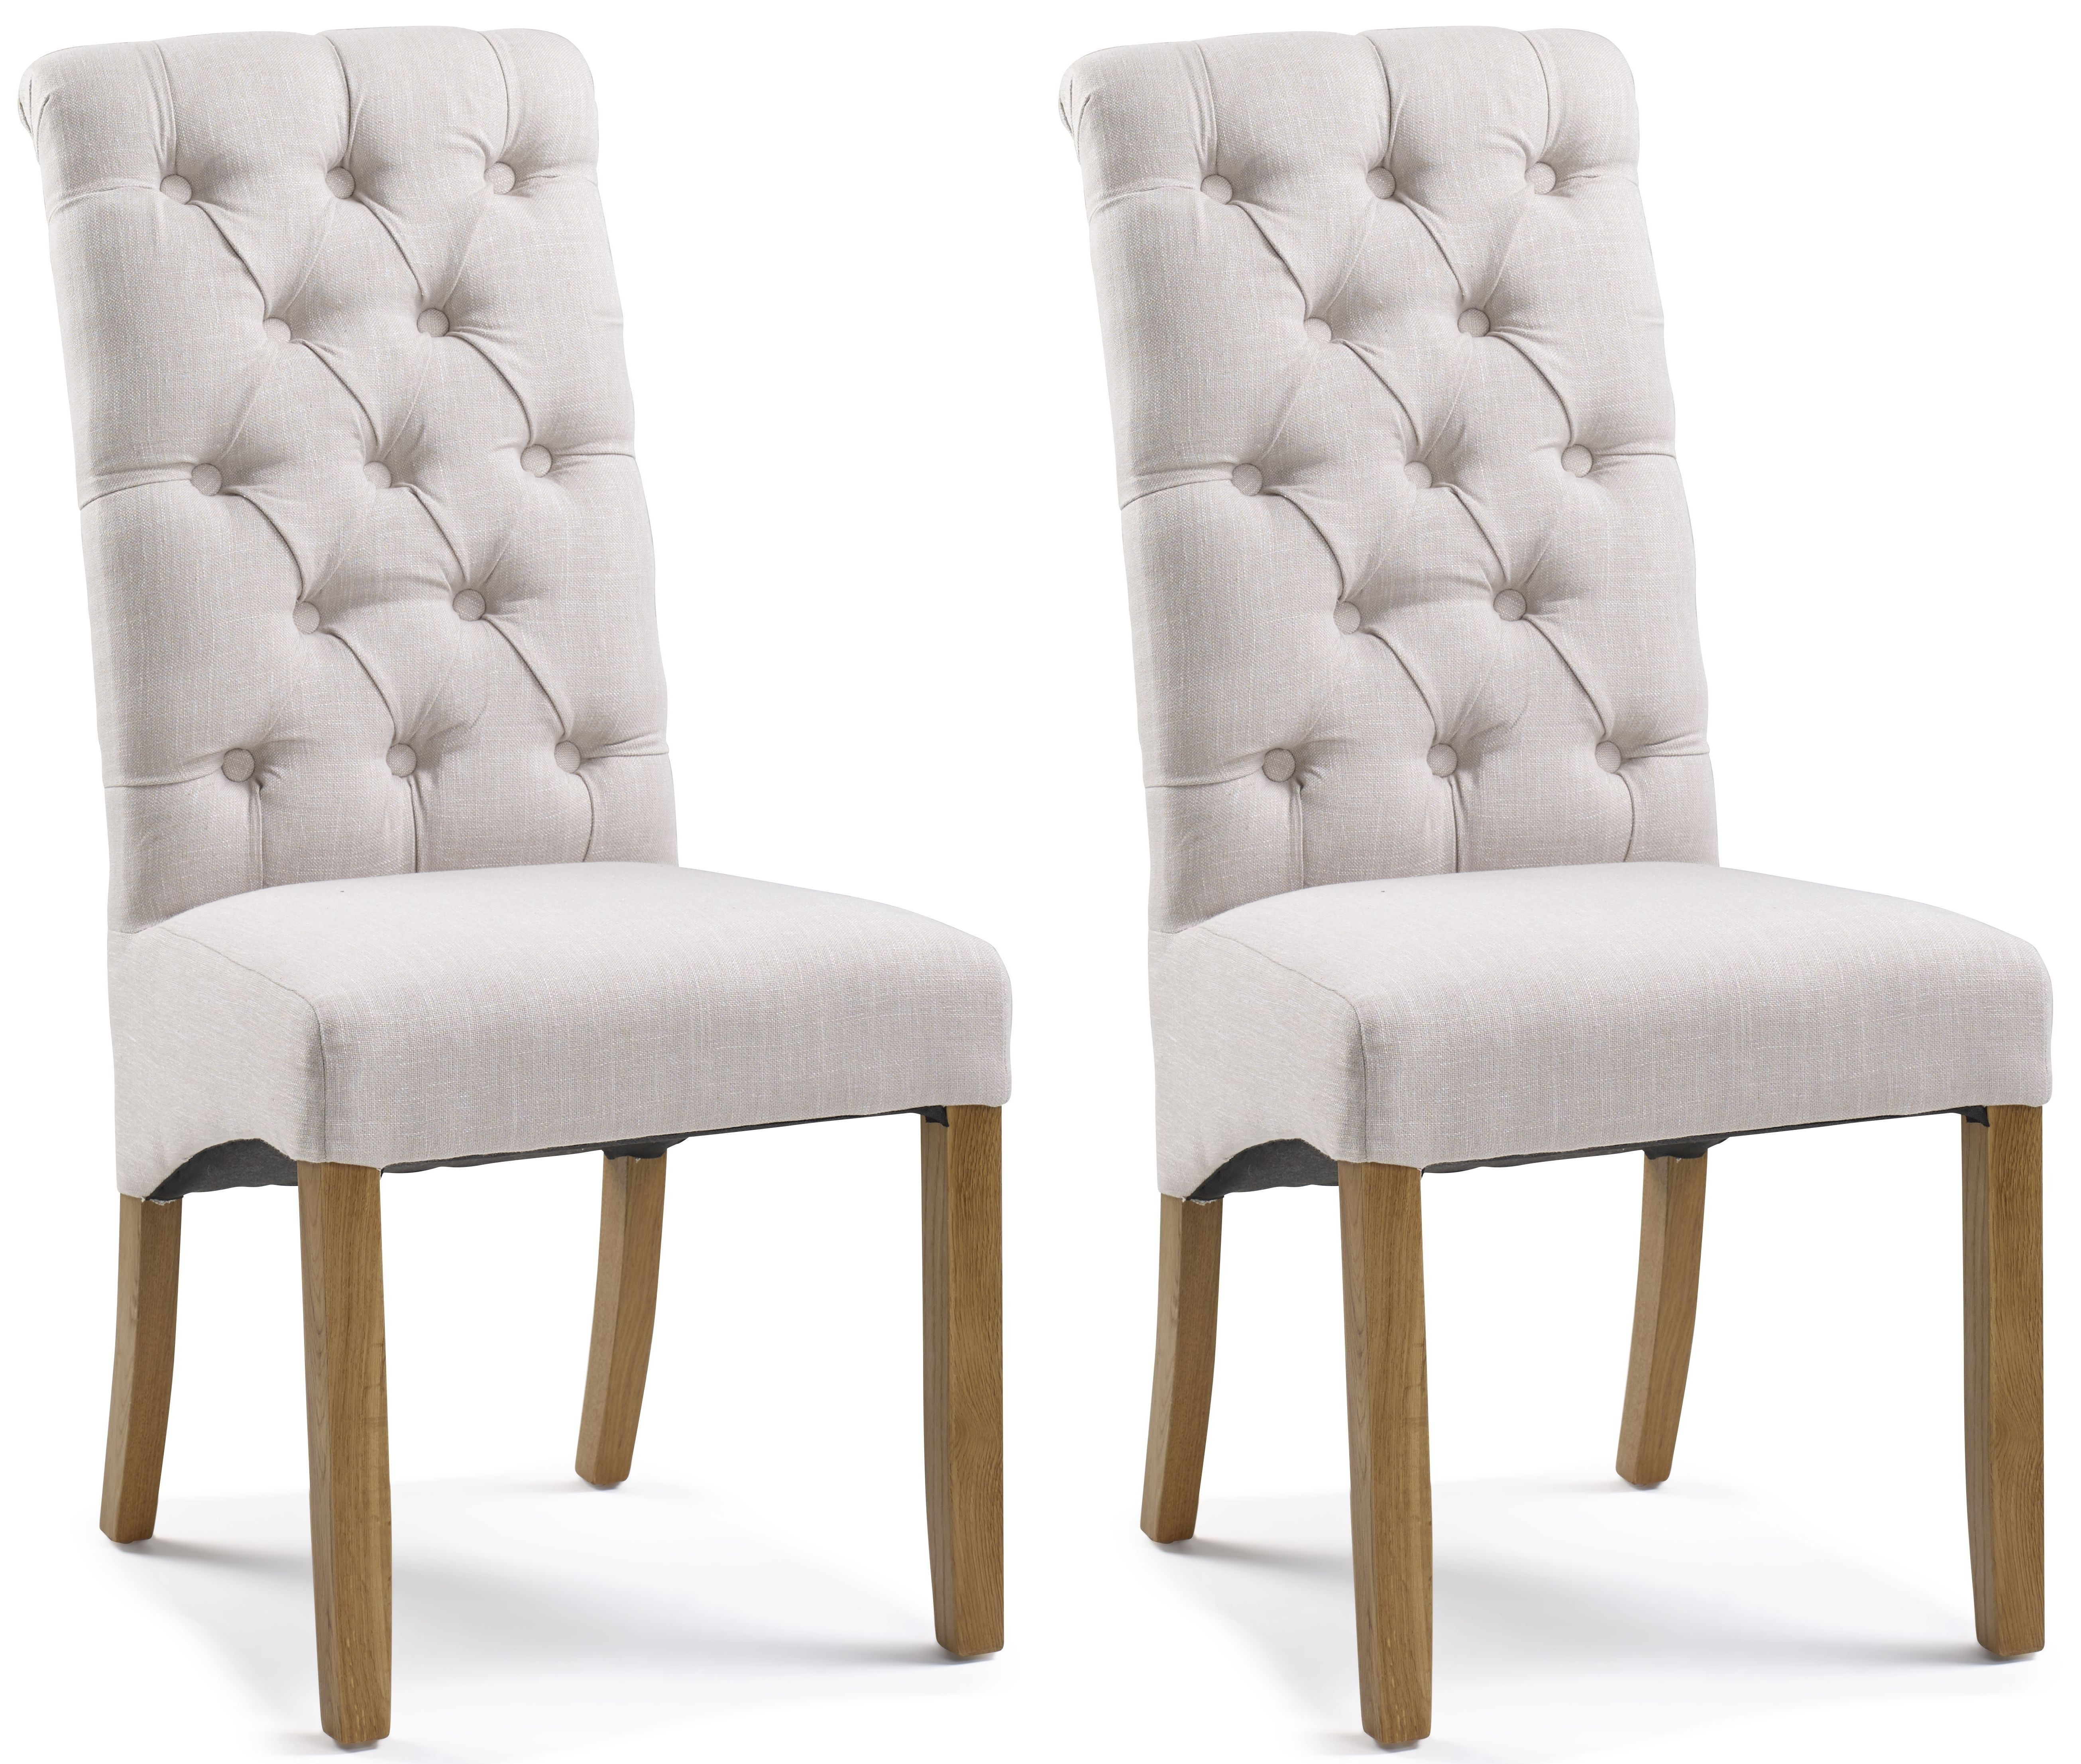 Athens Straight Top Natural Button Back Dining Chair (Pair)